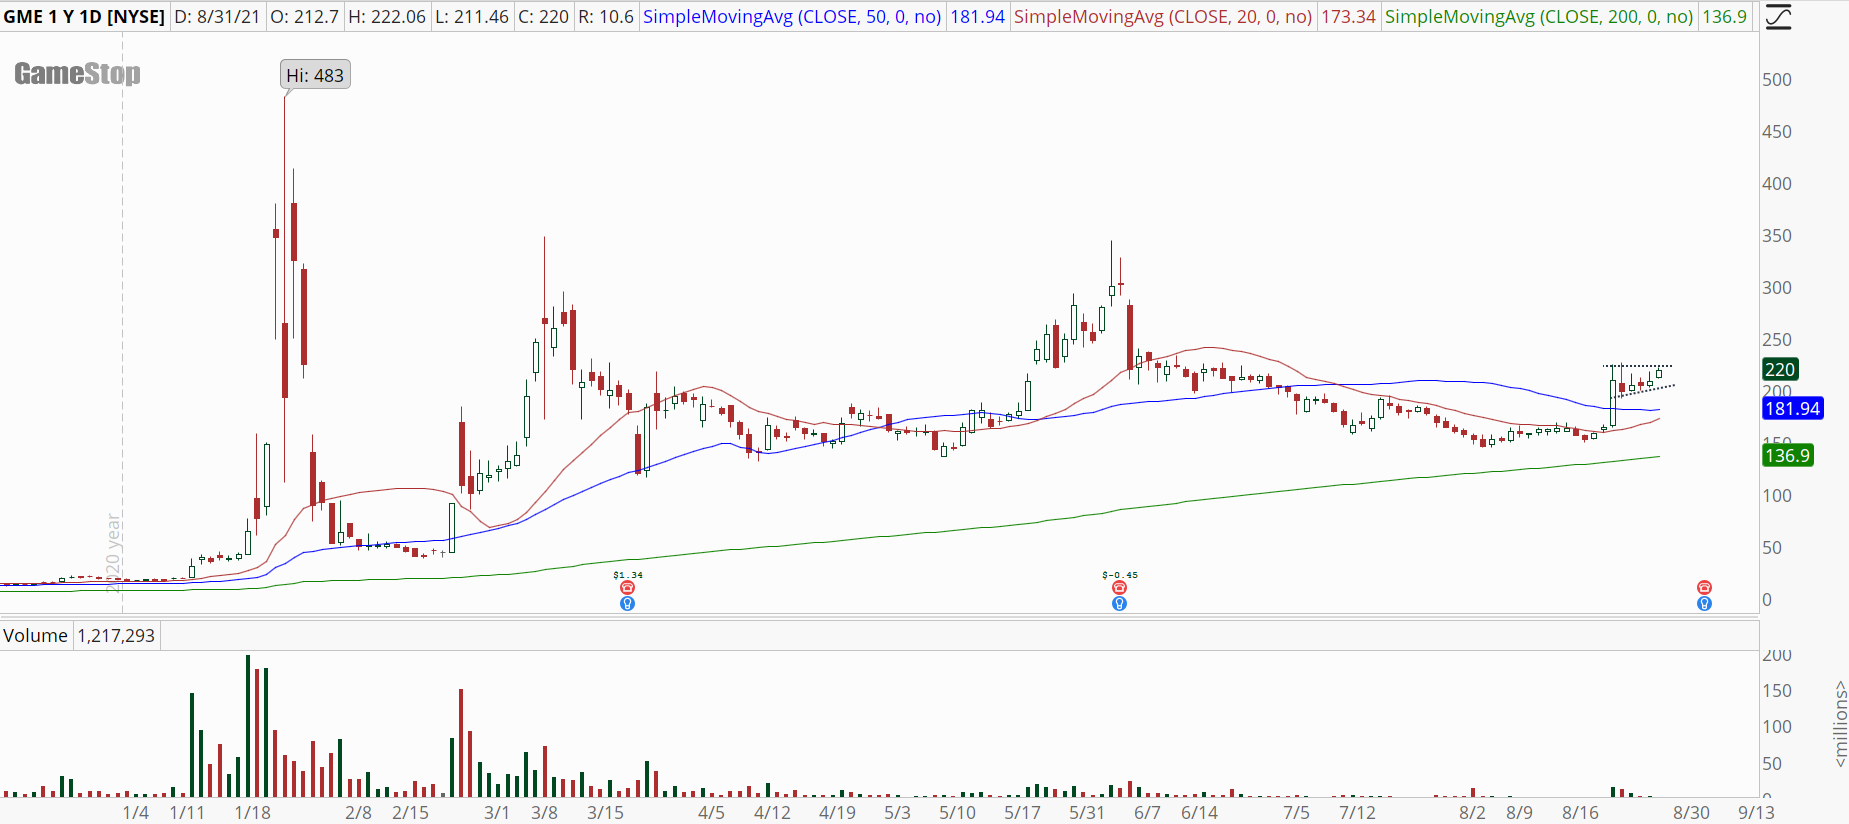 Gamestop (GME) stock chart with high base breakout